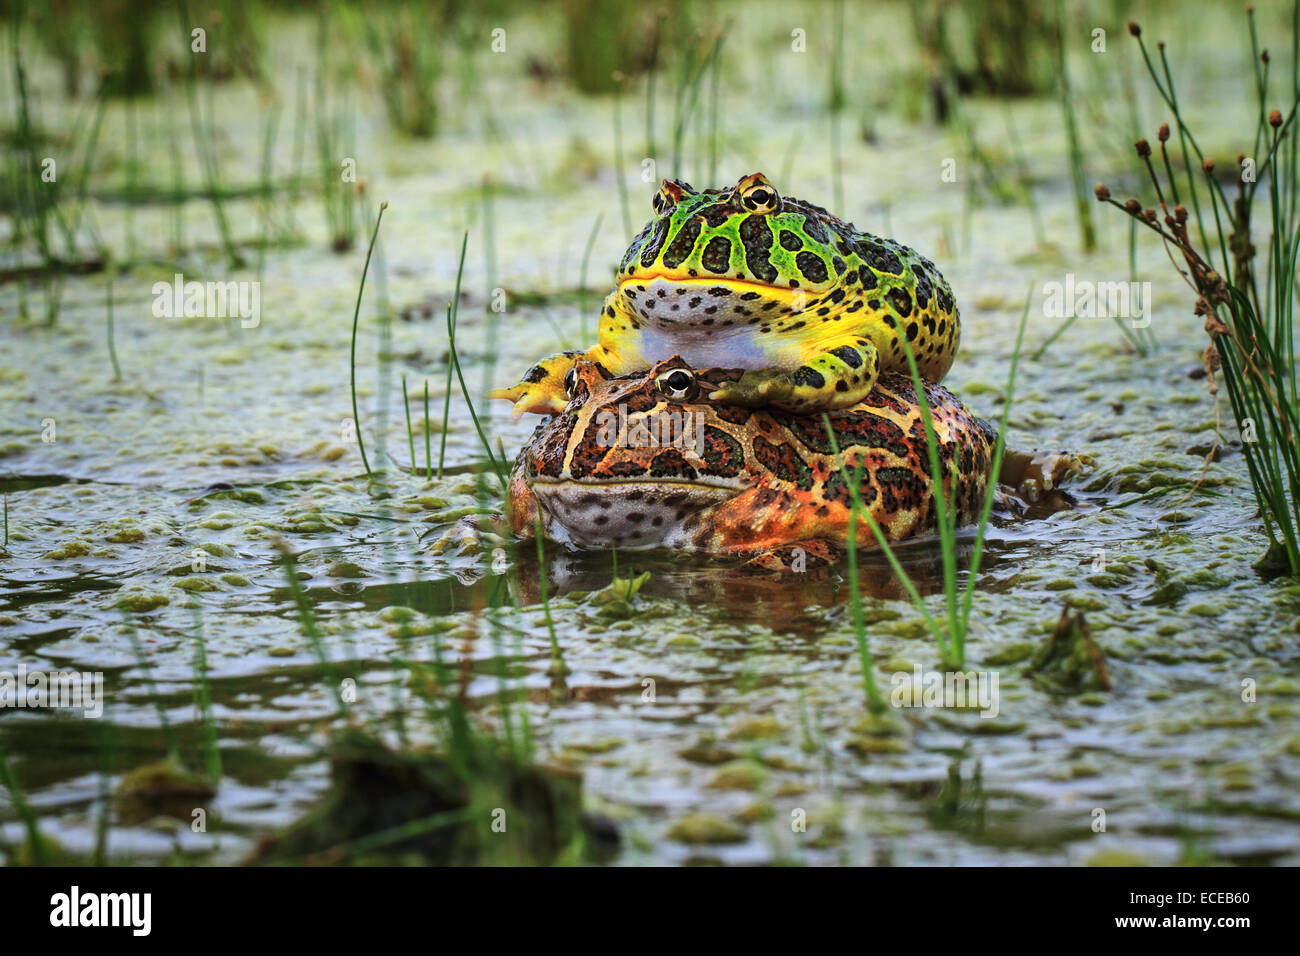 Toads mating in pond, Indonesia - Stock Image